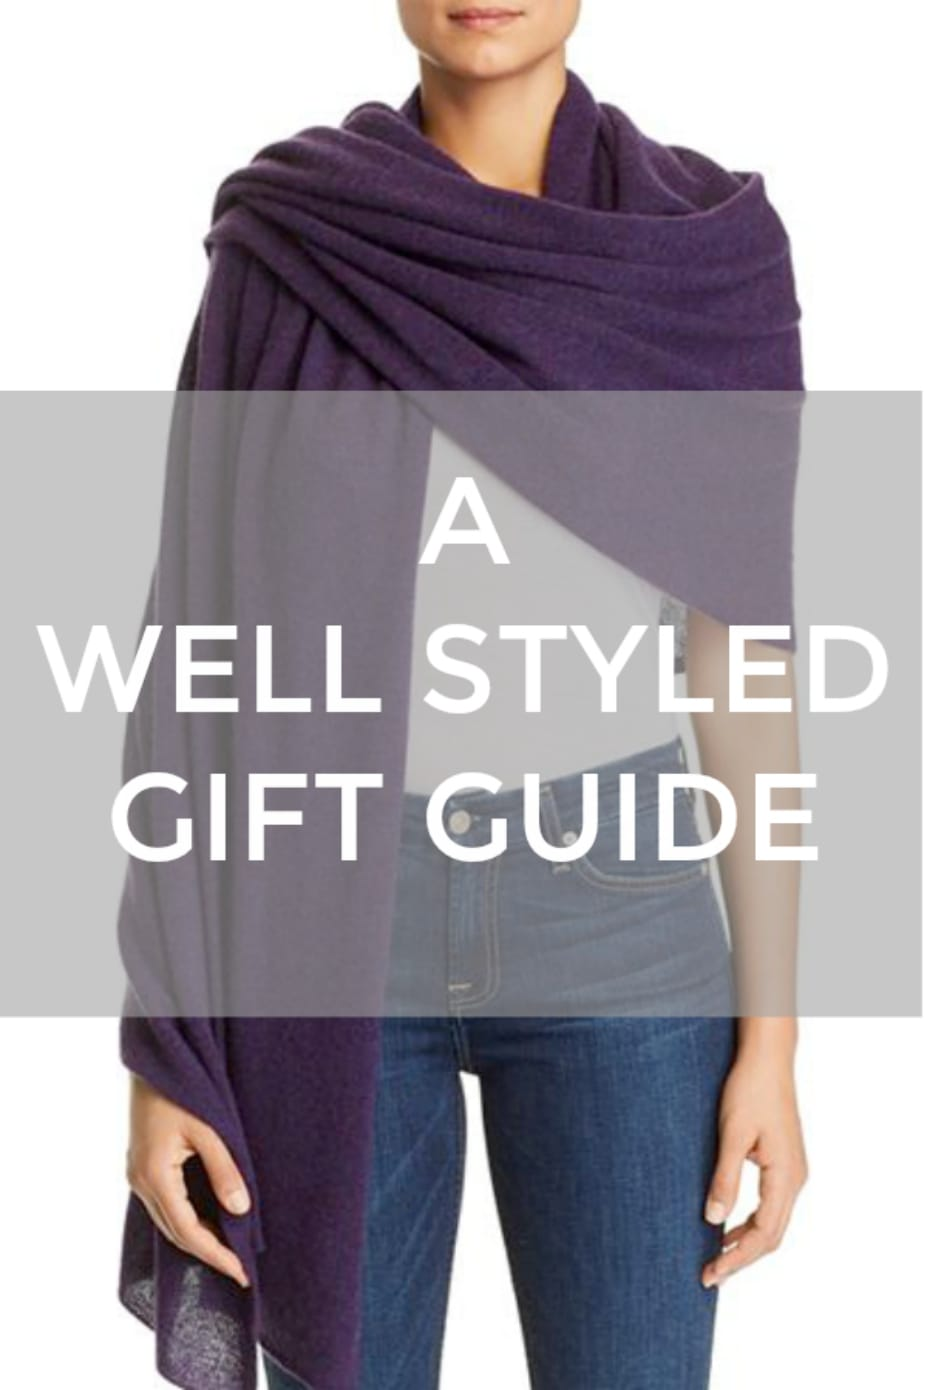 A Well Styled Gift Guide